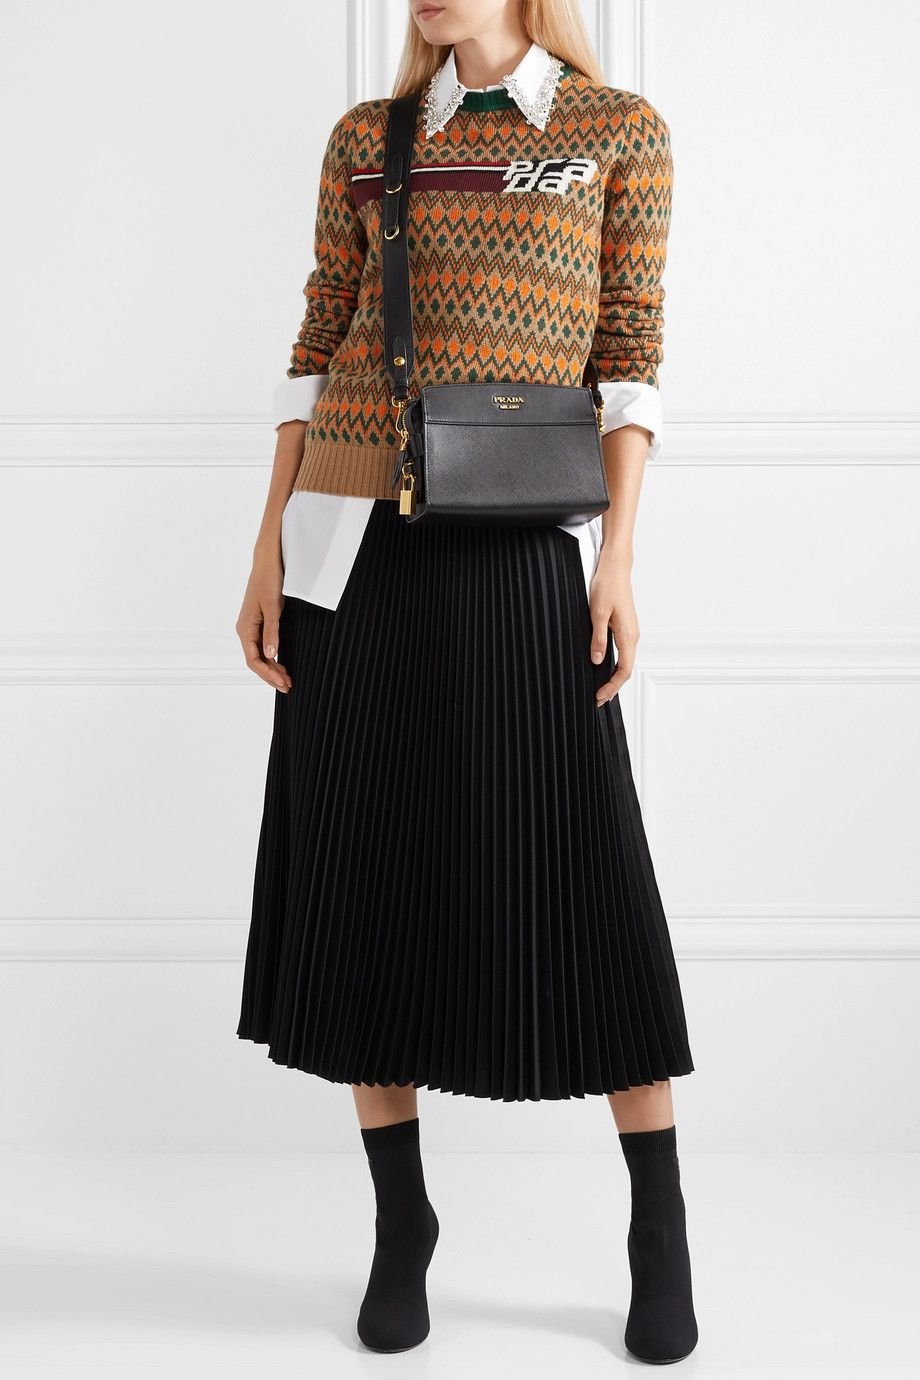 prada-fall-2018-pleated-skirt-intarsia-sweater-look